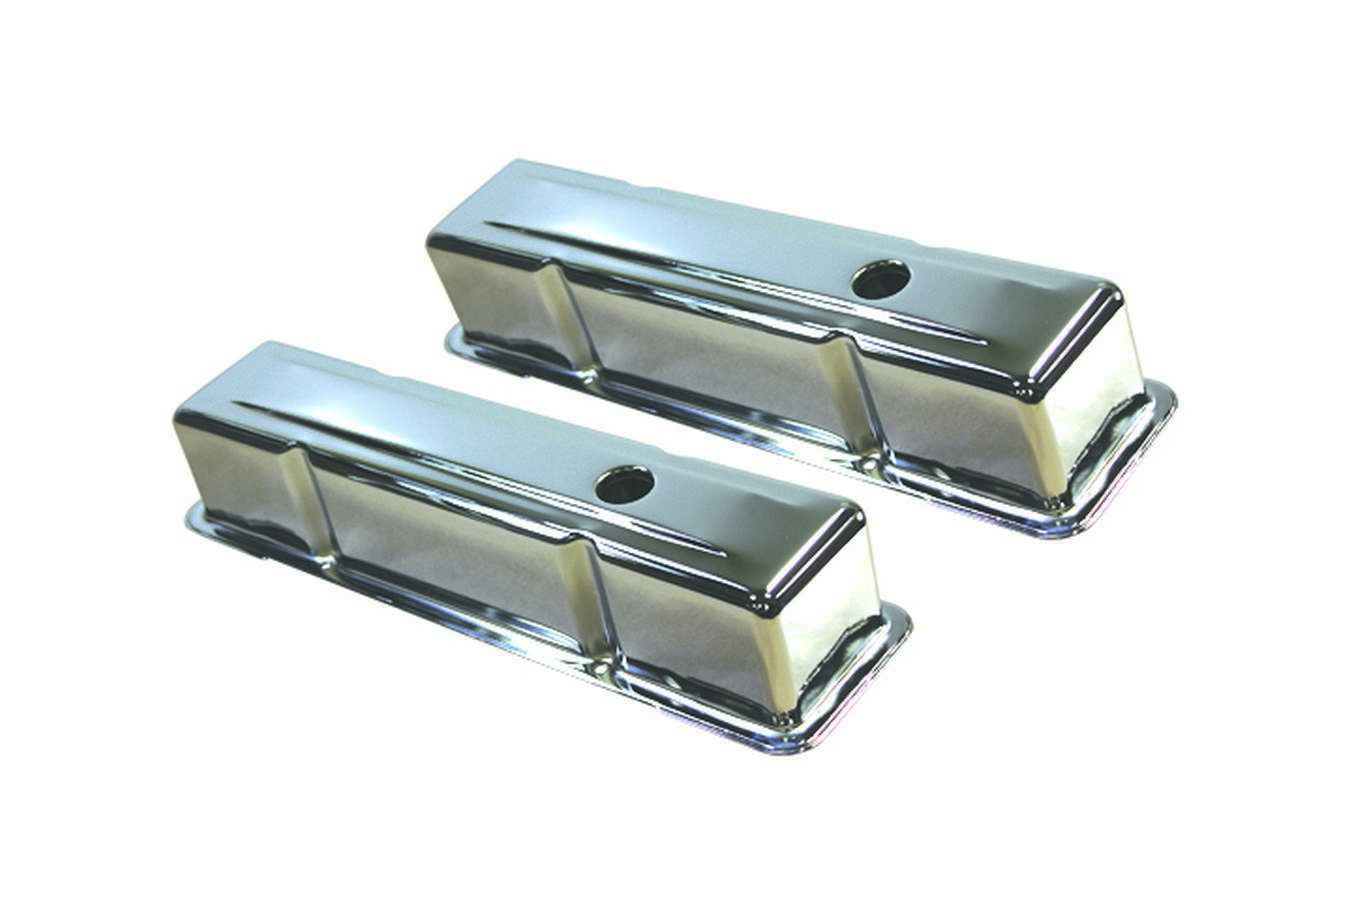 Specialty Products 8195 Valve Cover, Tall, Baffled, Breather Holes, Steel, Chrome, Small Block Chevy, Pair